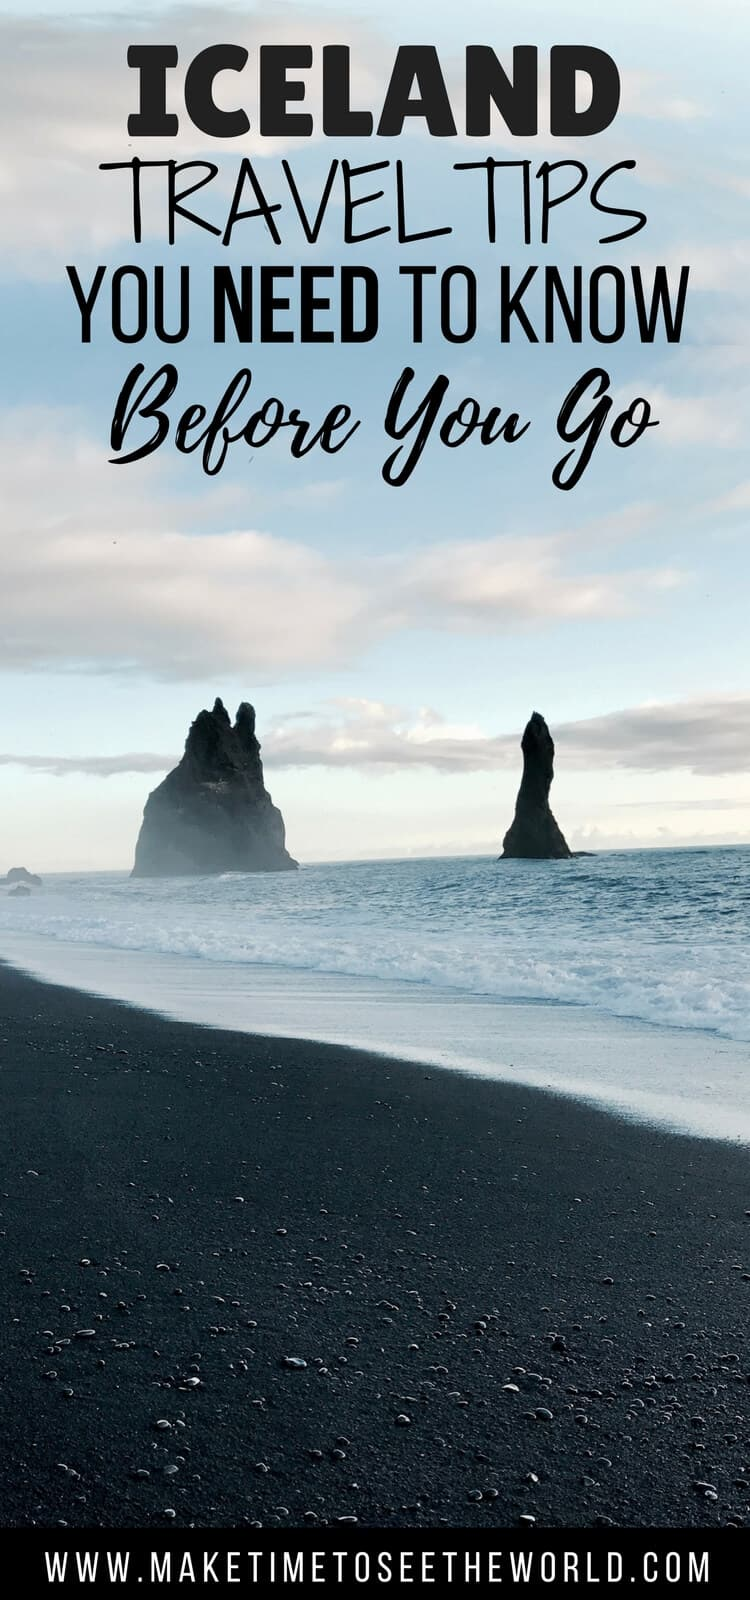 Traveling to Iceland - Grab these Iceland Travel Tips before you go!